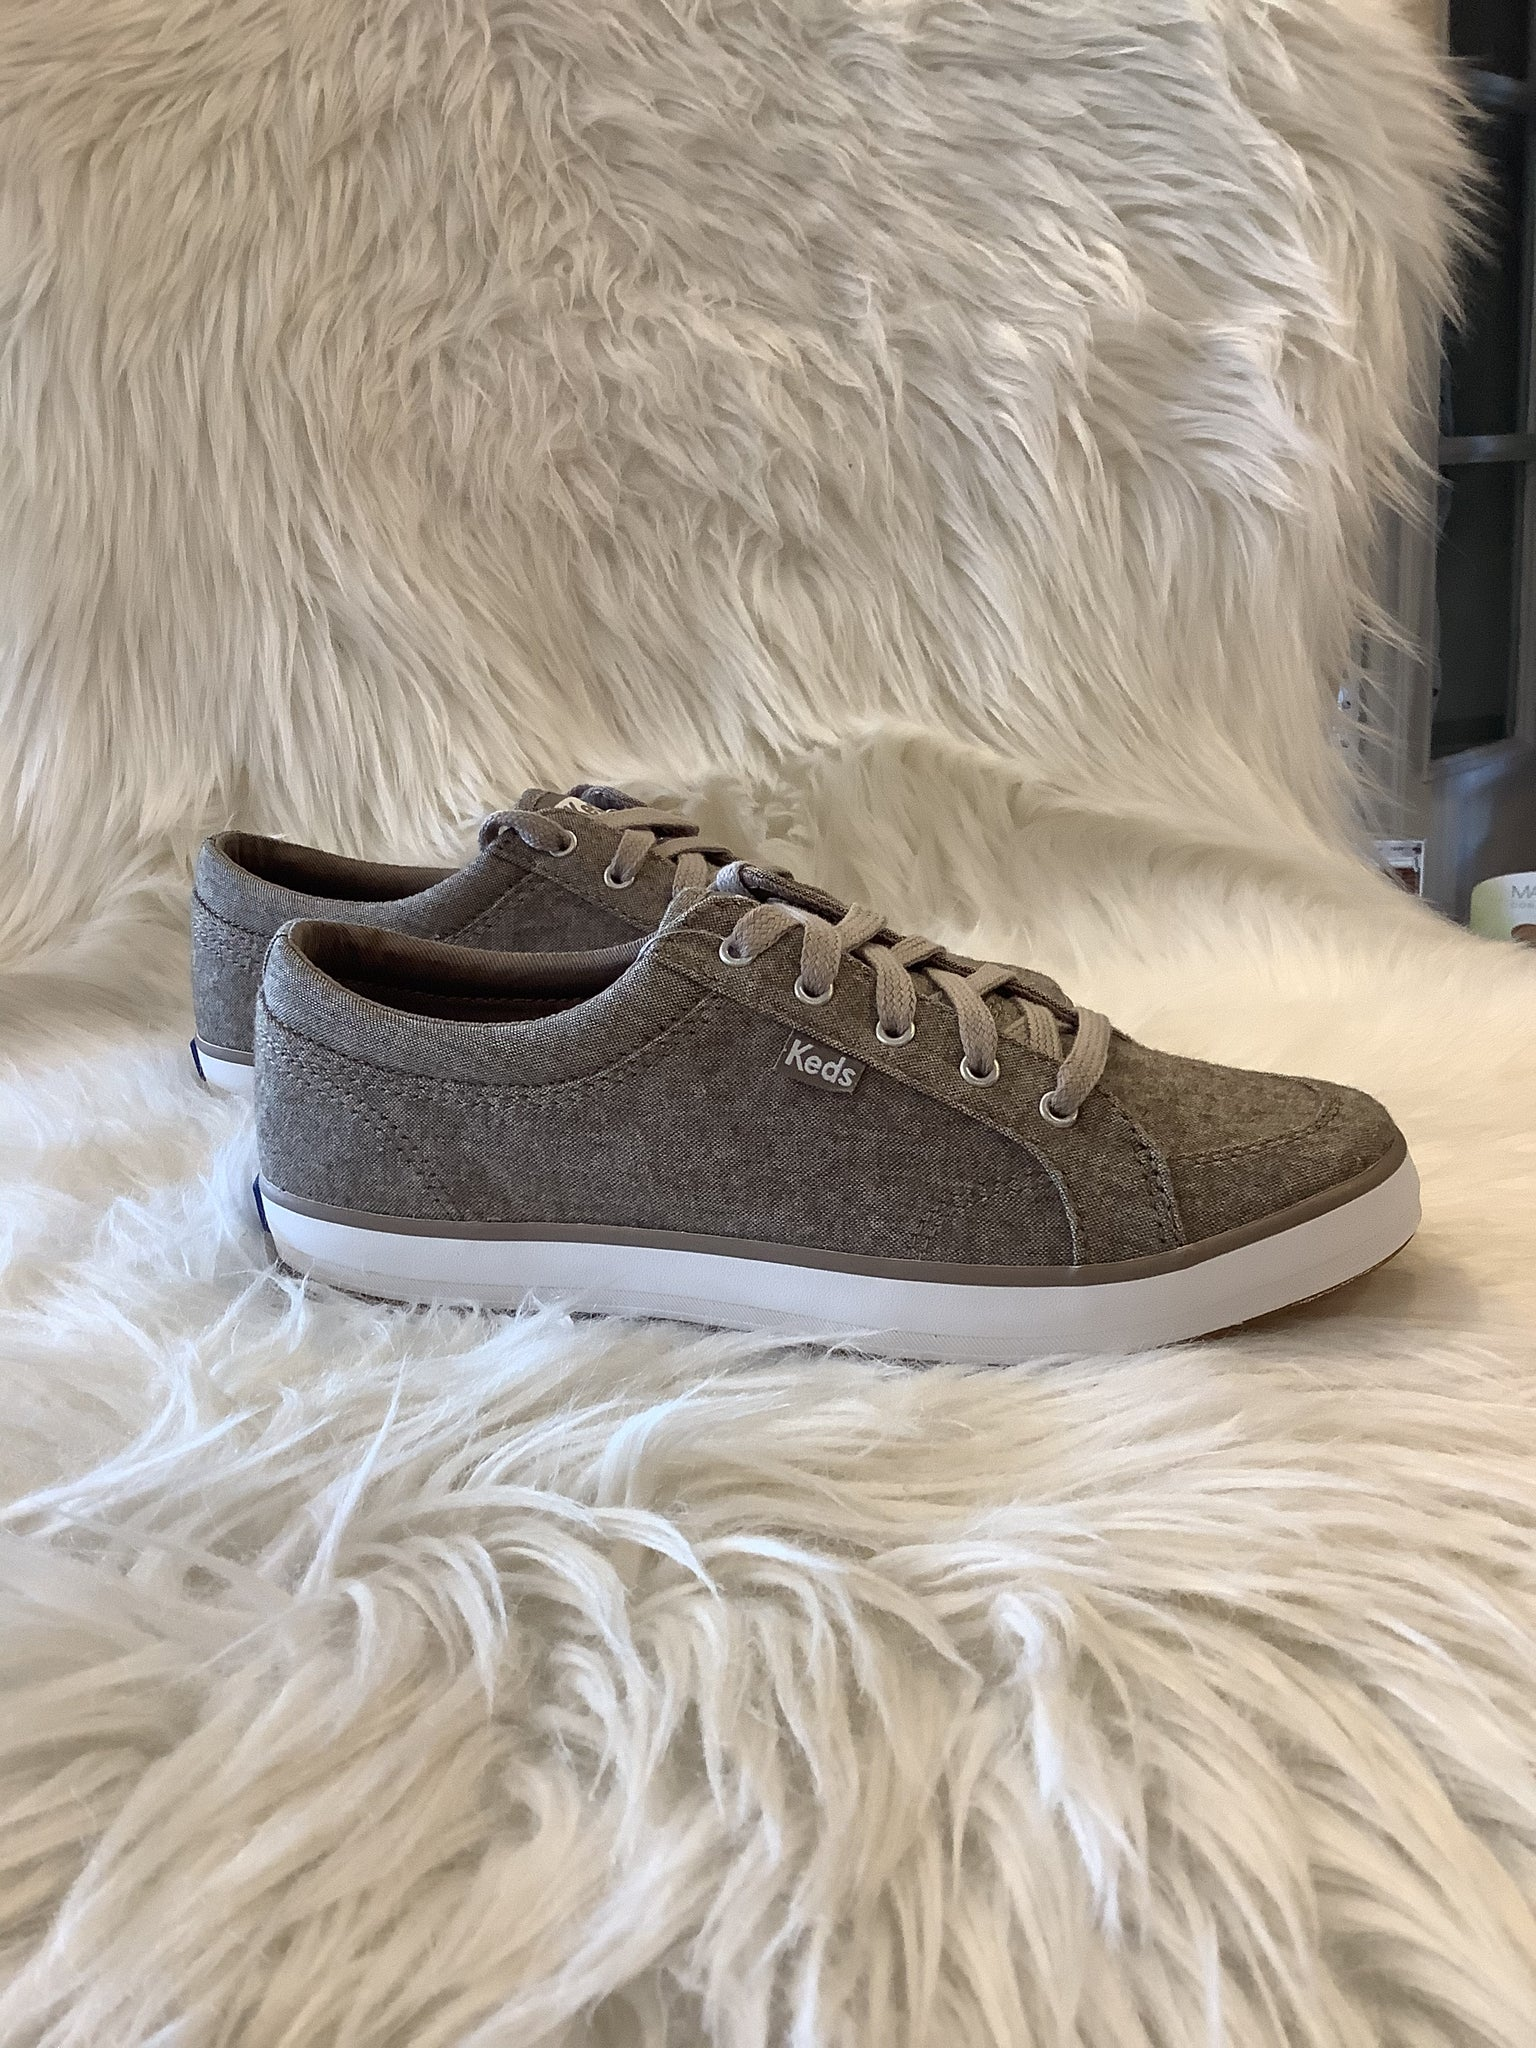 Ked's Center Brushed Walnut Sneakers